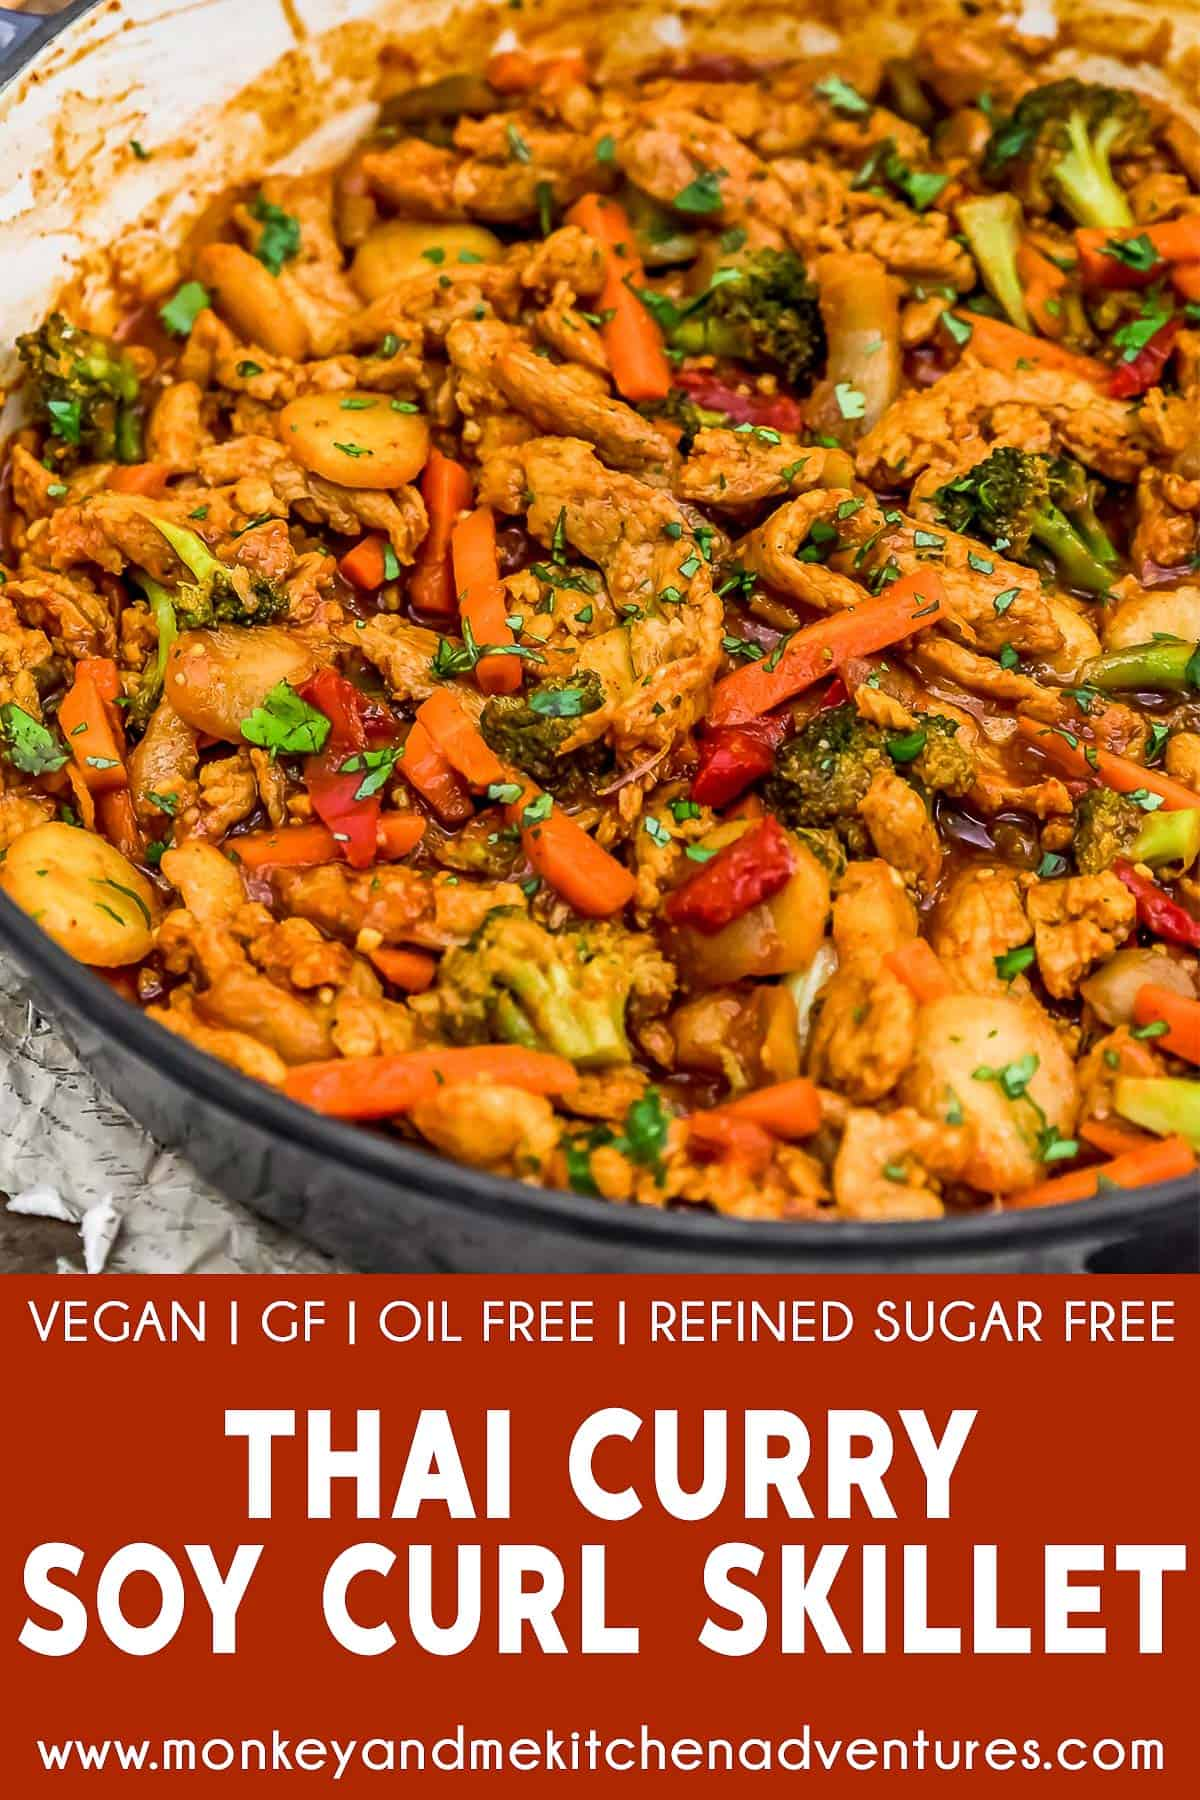 Thai Curry Soy Curl Skillet with text description